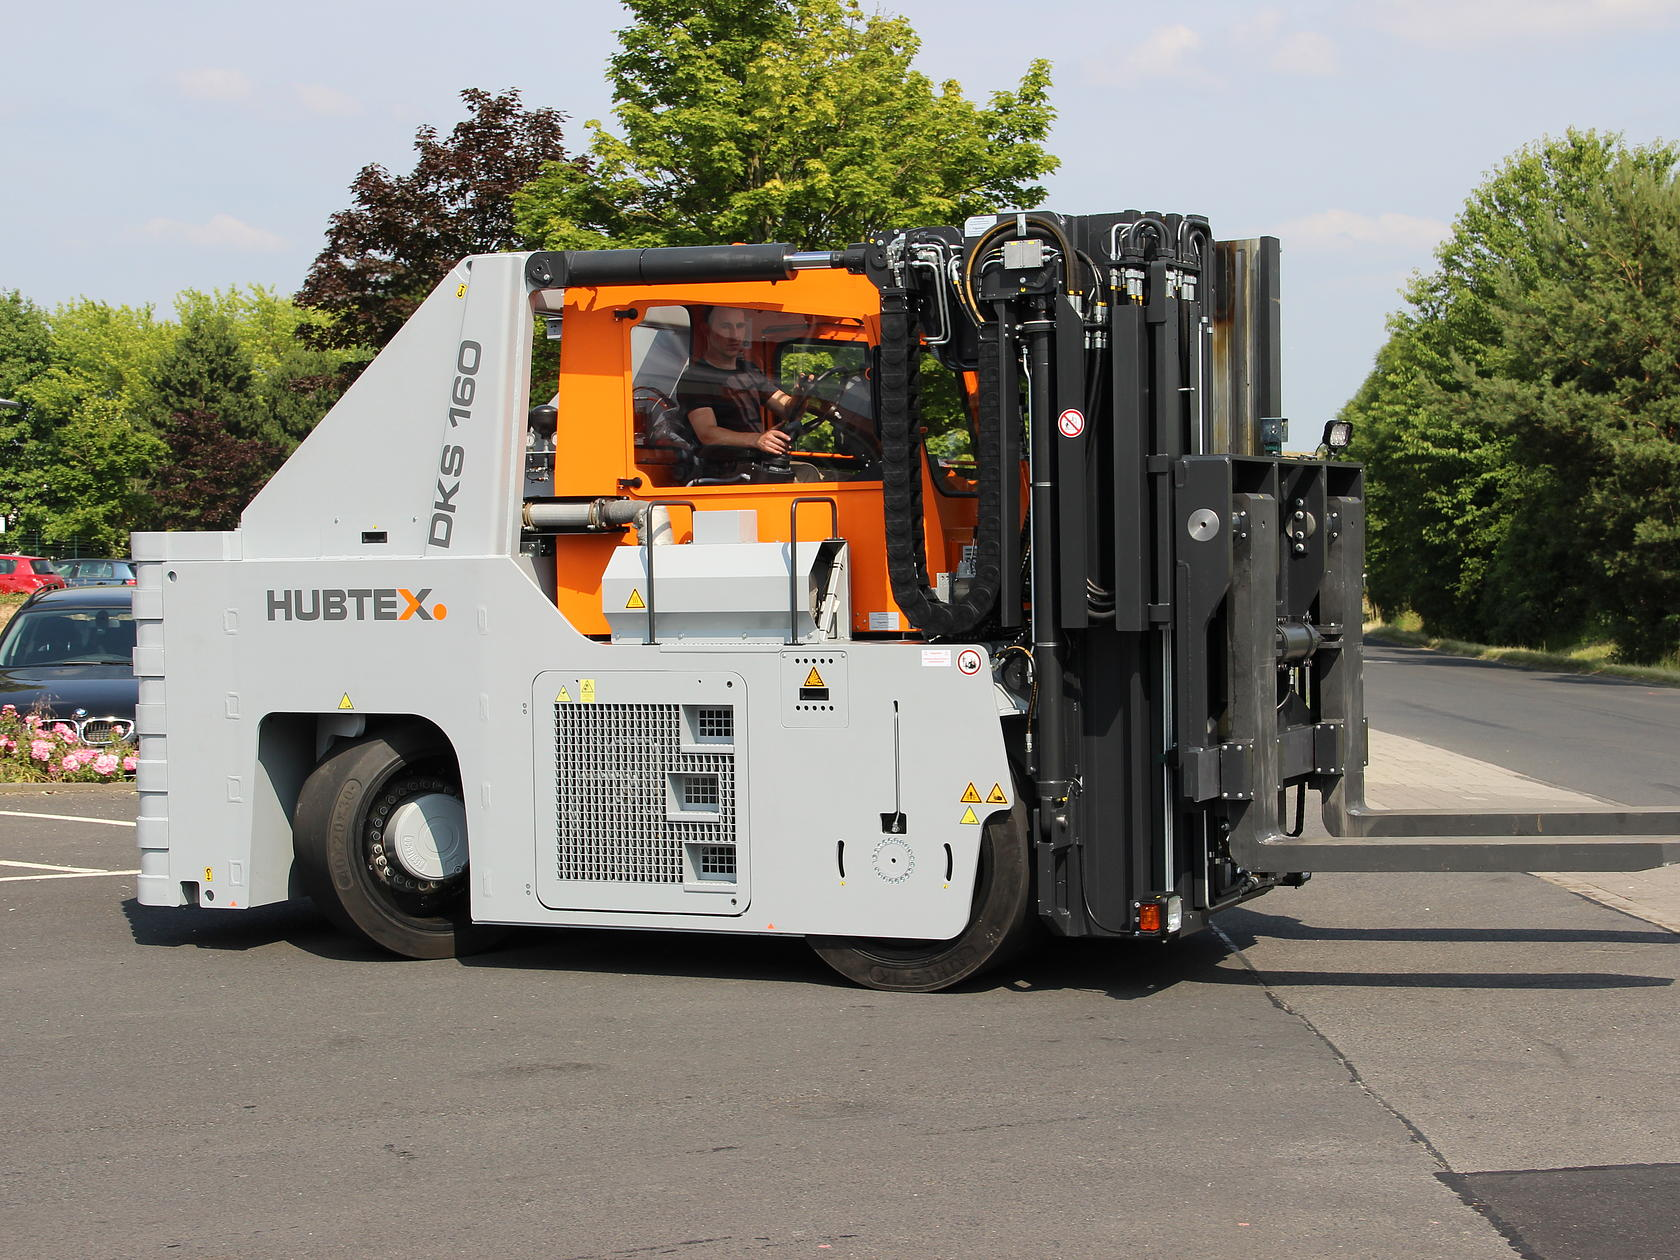 Side view of HUBTEX heavy-duty compact frontlift